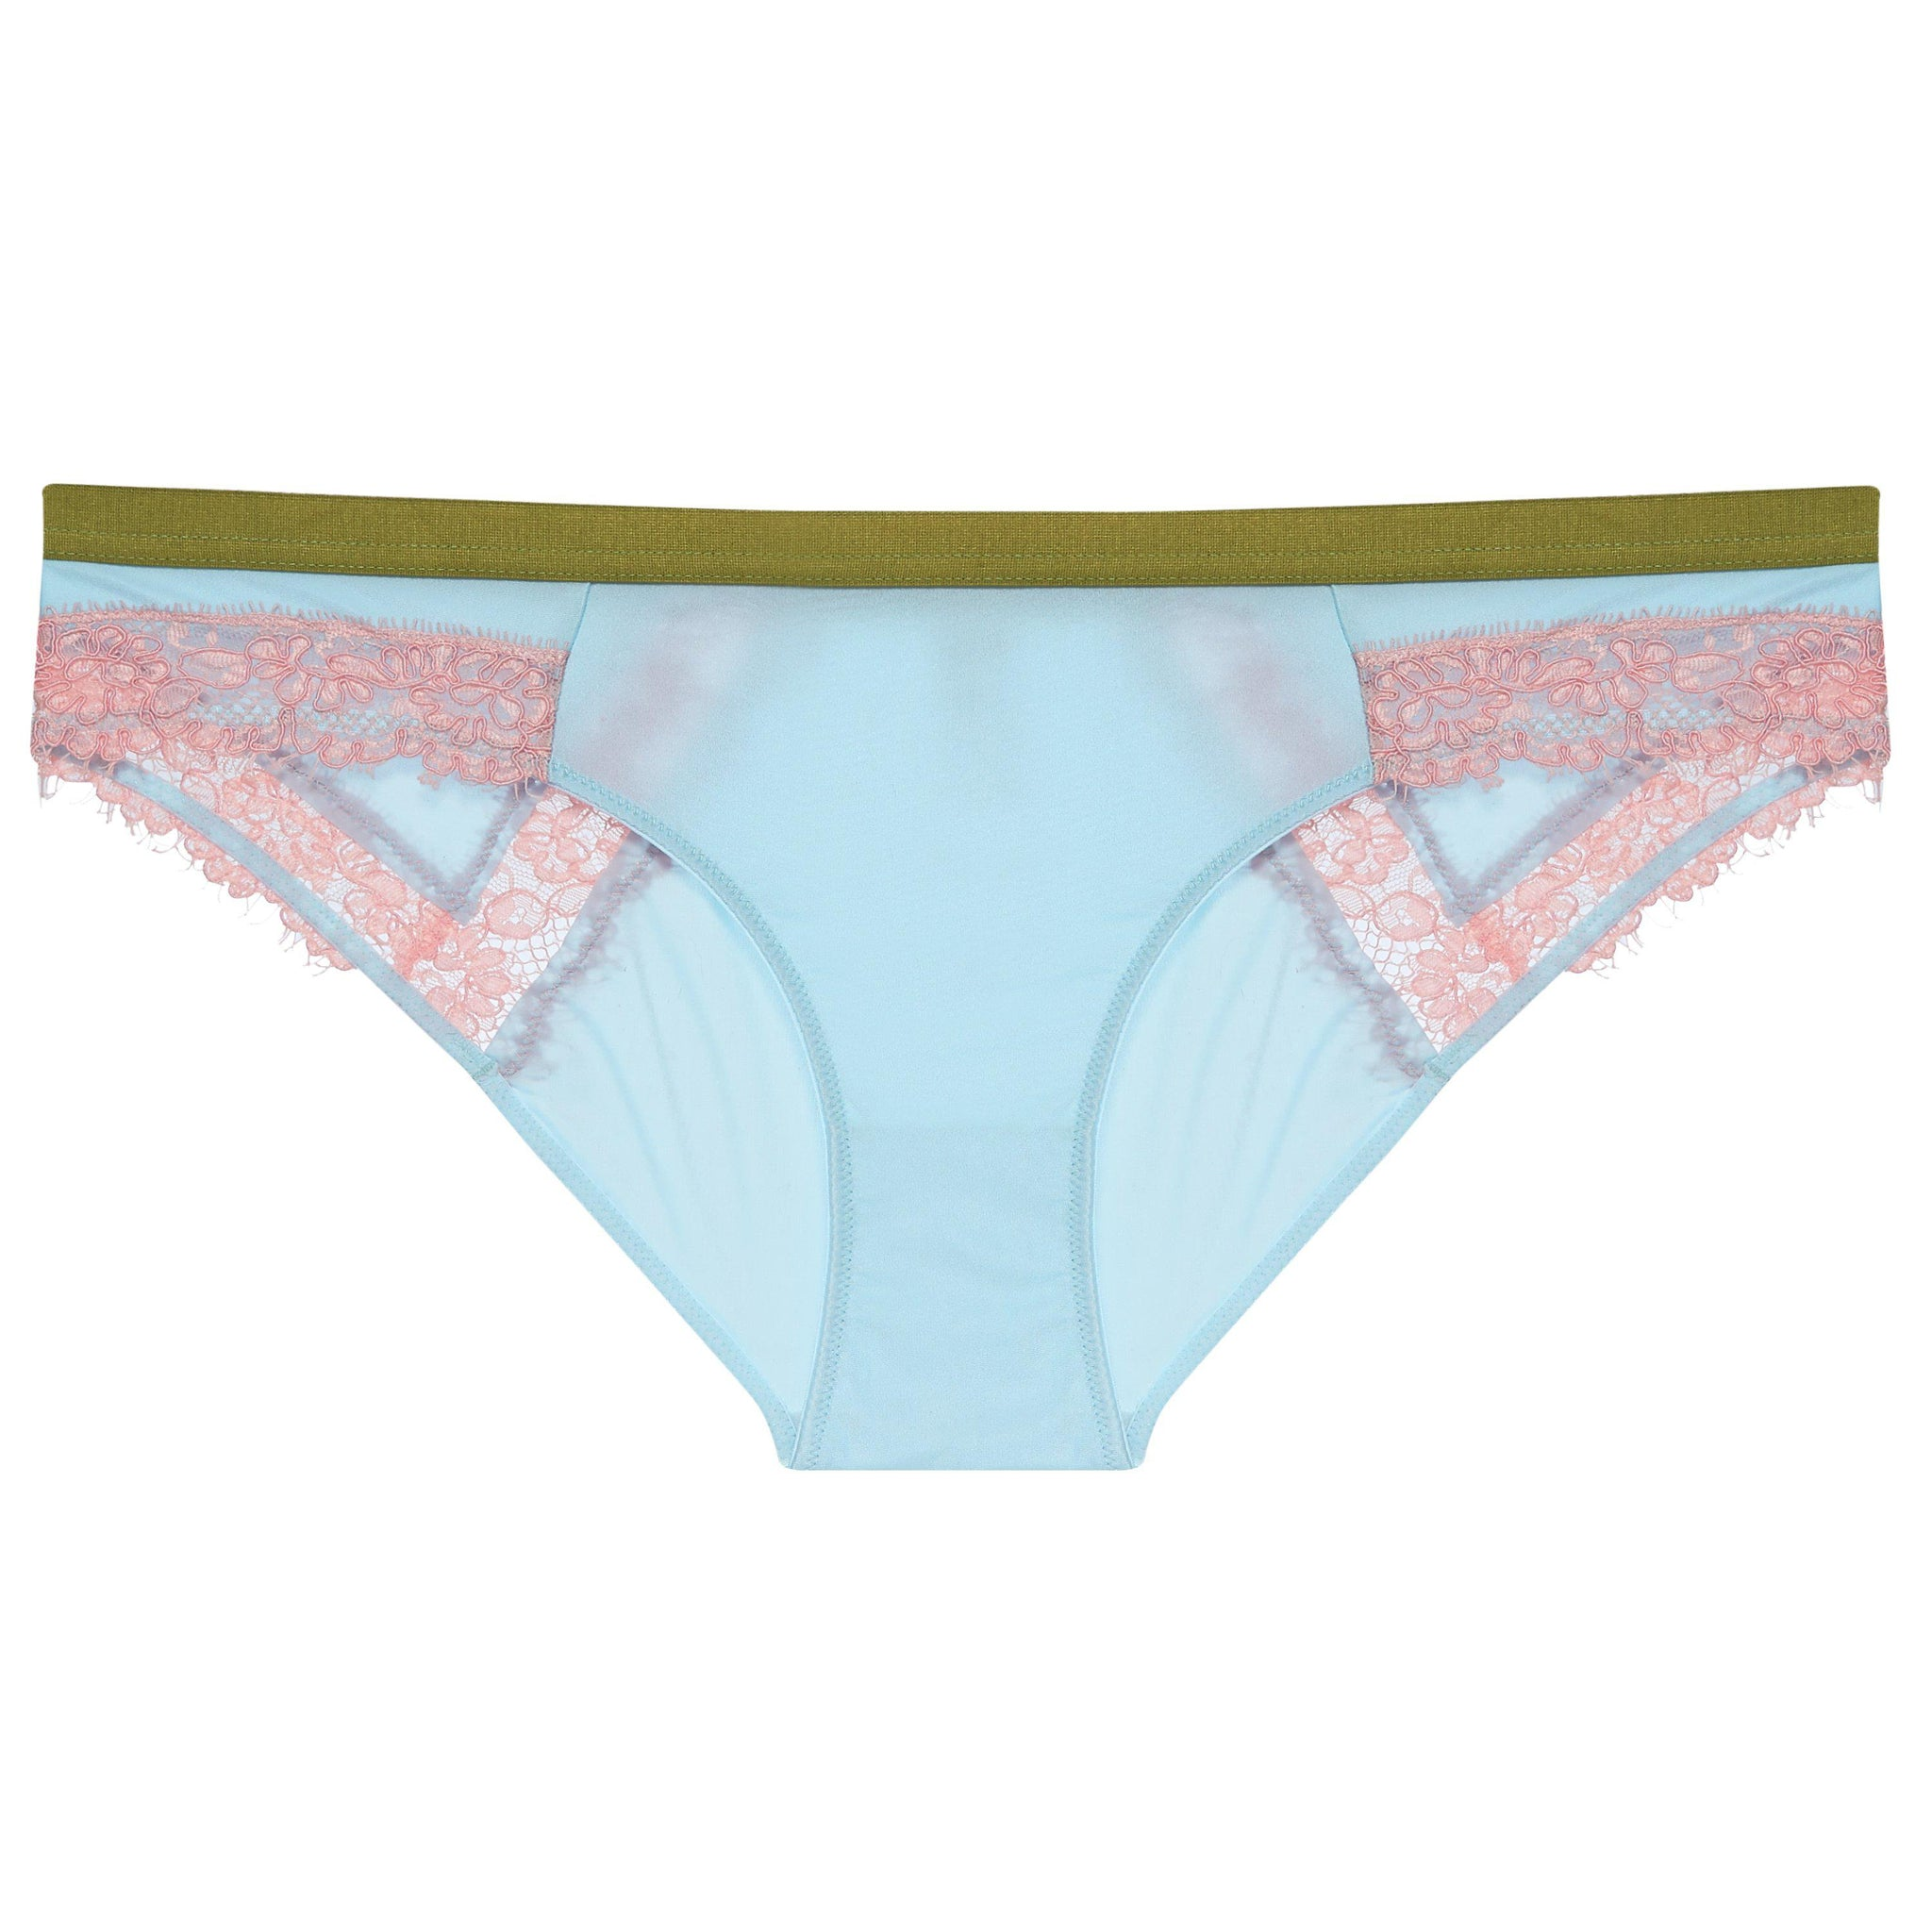 Dora Larsen AW19 | Colourful Lingerie‎ - Bonnie low rise knicker underwear set